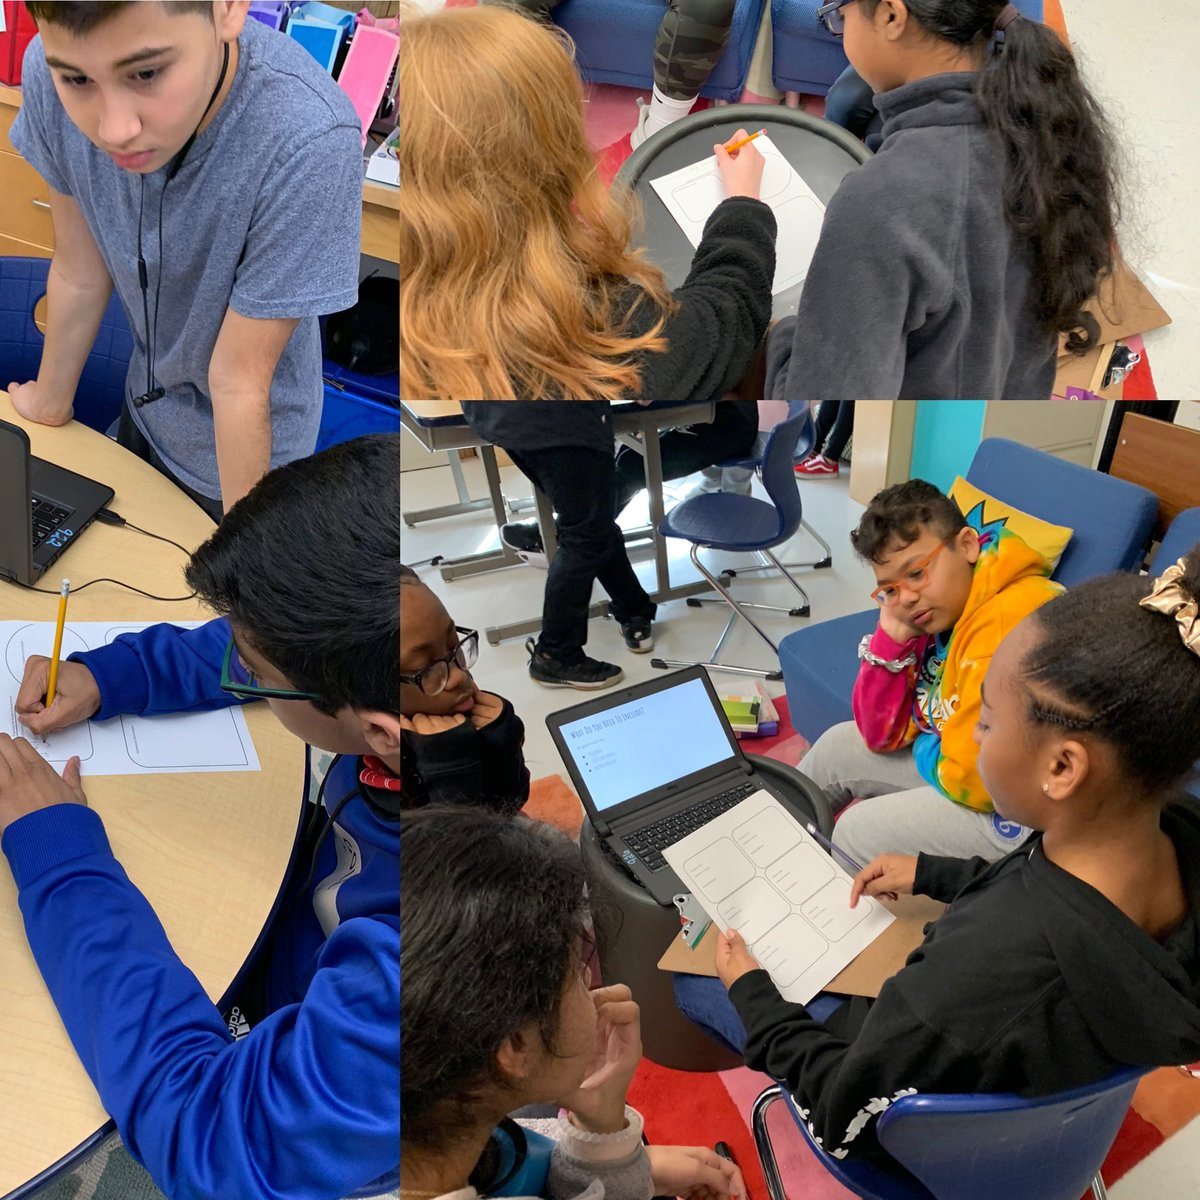 Grade 7 students collaborating on outlines for organizing their student government plans. #mypdesign #criterionb #developingideas #studentgovernmentpic.twitter.com/l2RMu5ejm1